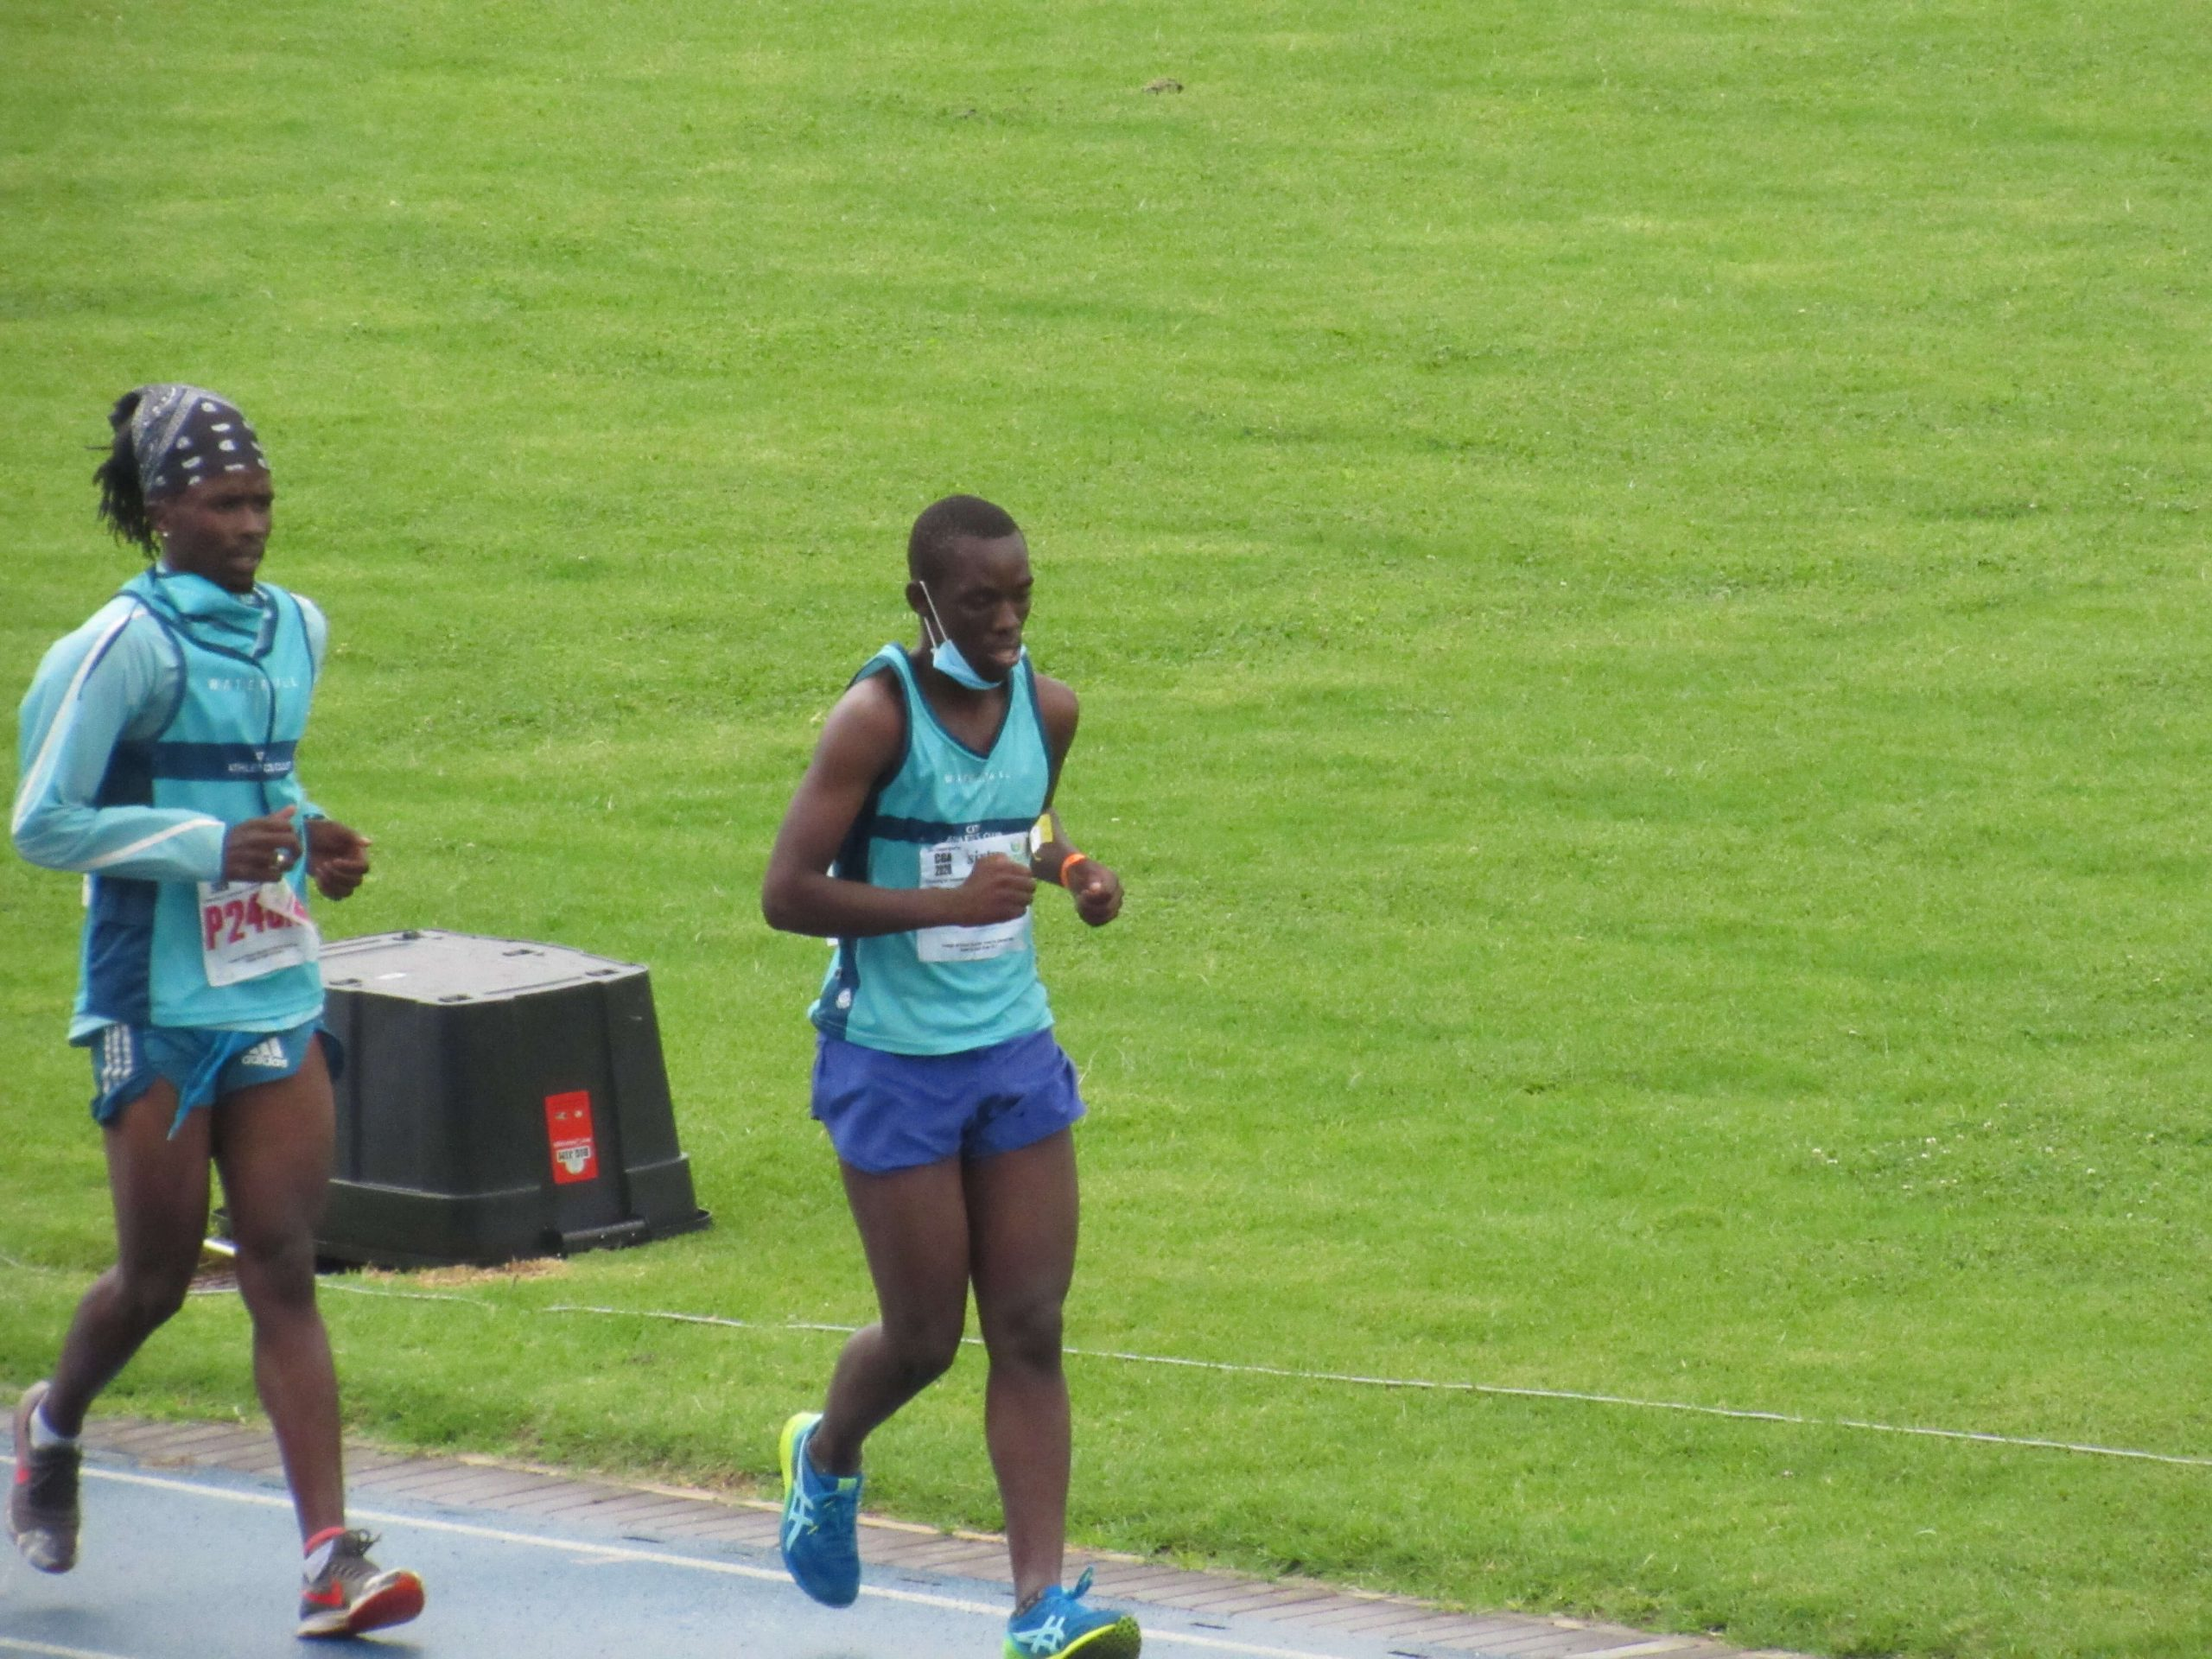 CGA Track & Field Boksburg Stadium 05 December 2020